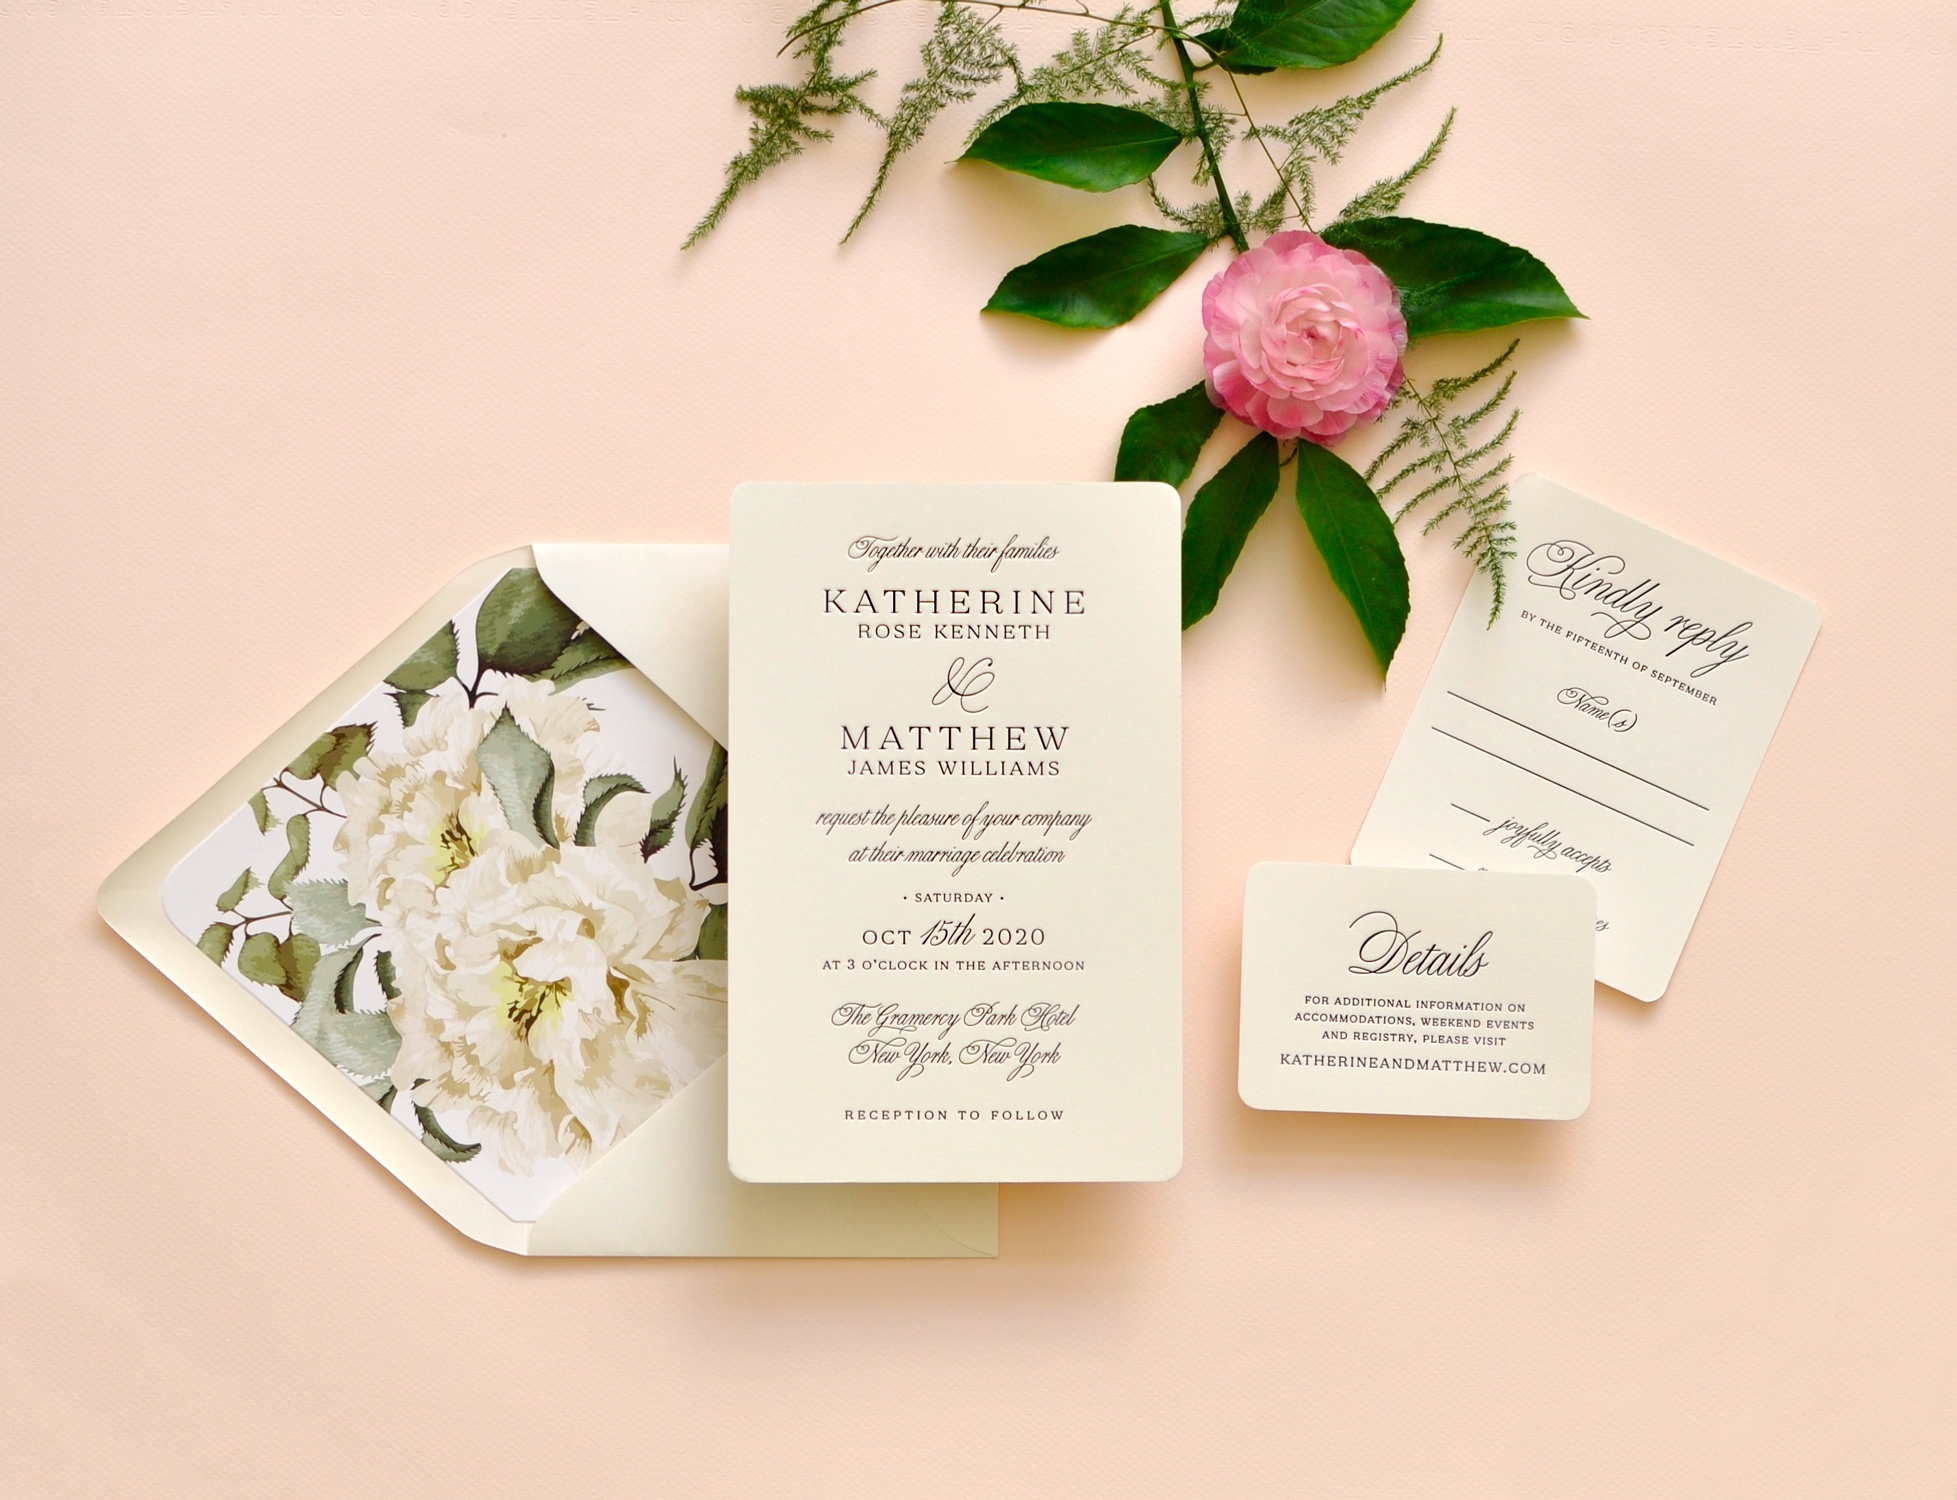 Gorgeous script and block text is beautifully letterpressed into a natural white 2-ply paper.